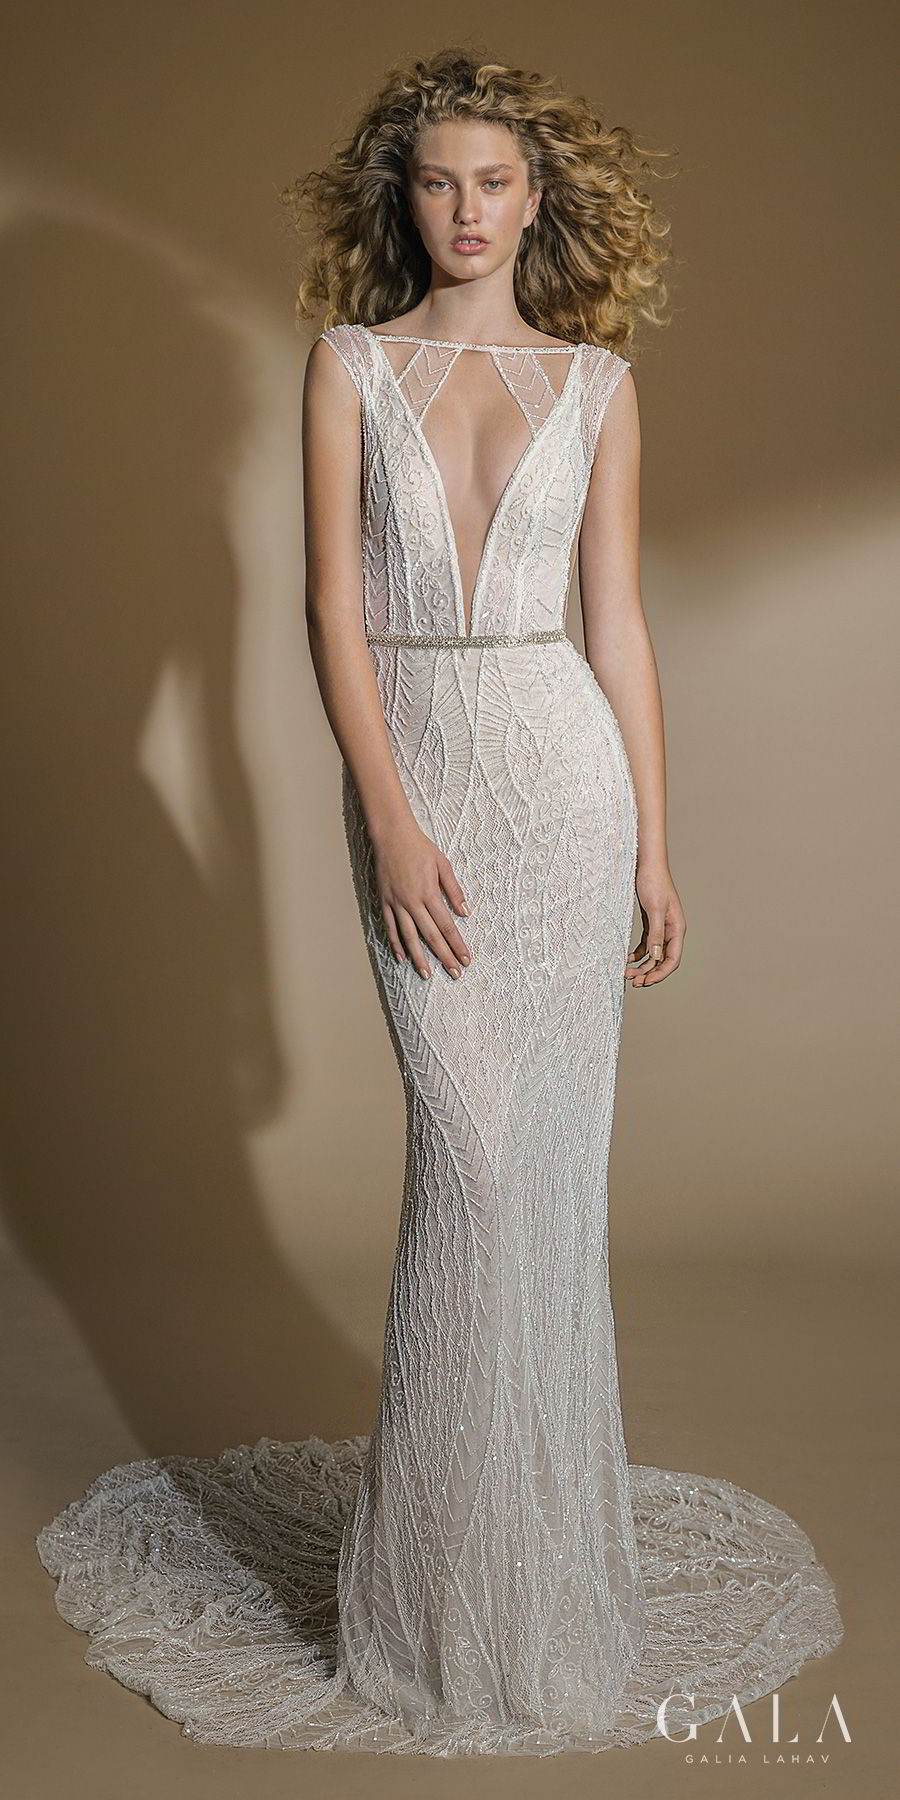 galia lahav gala 2019 bridal cap sleeves bateau deep plunging v neck full embellishment art deco elegant fit and flare sheath wedding dress open back chapel train (101) mv